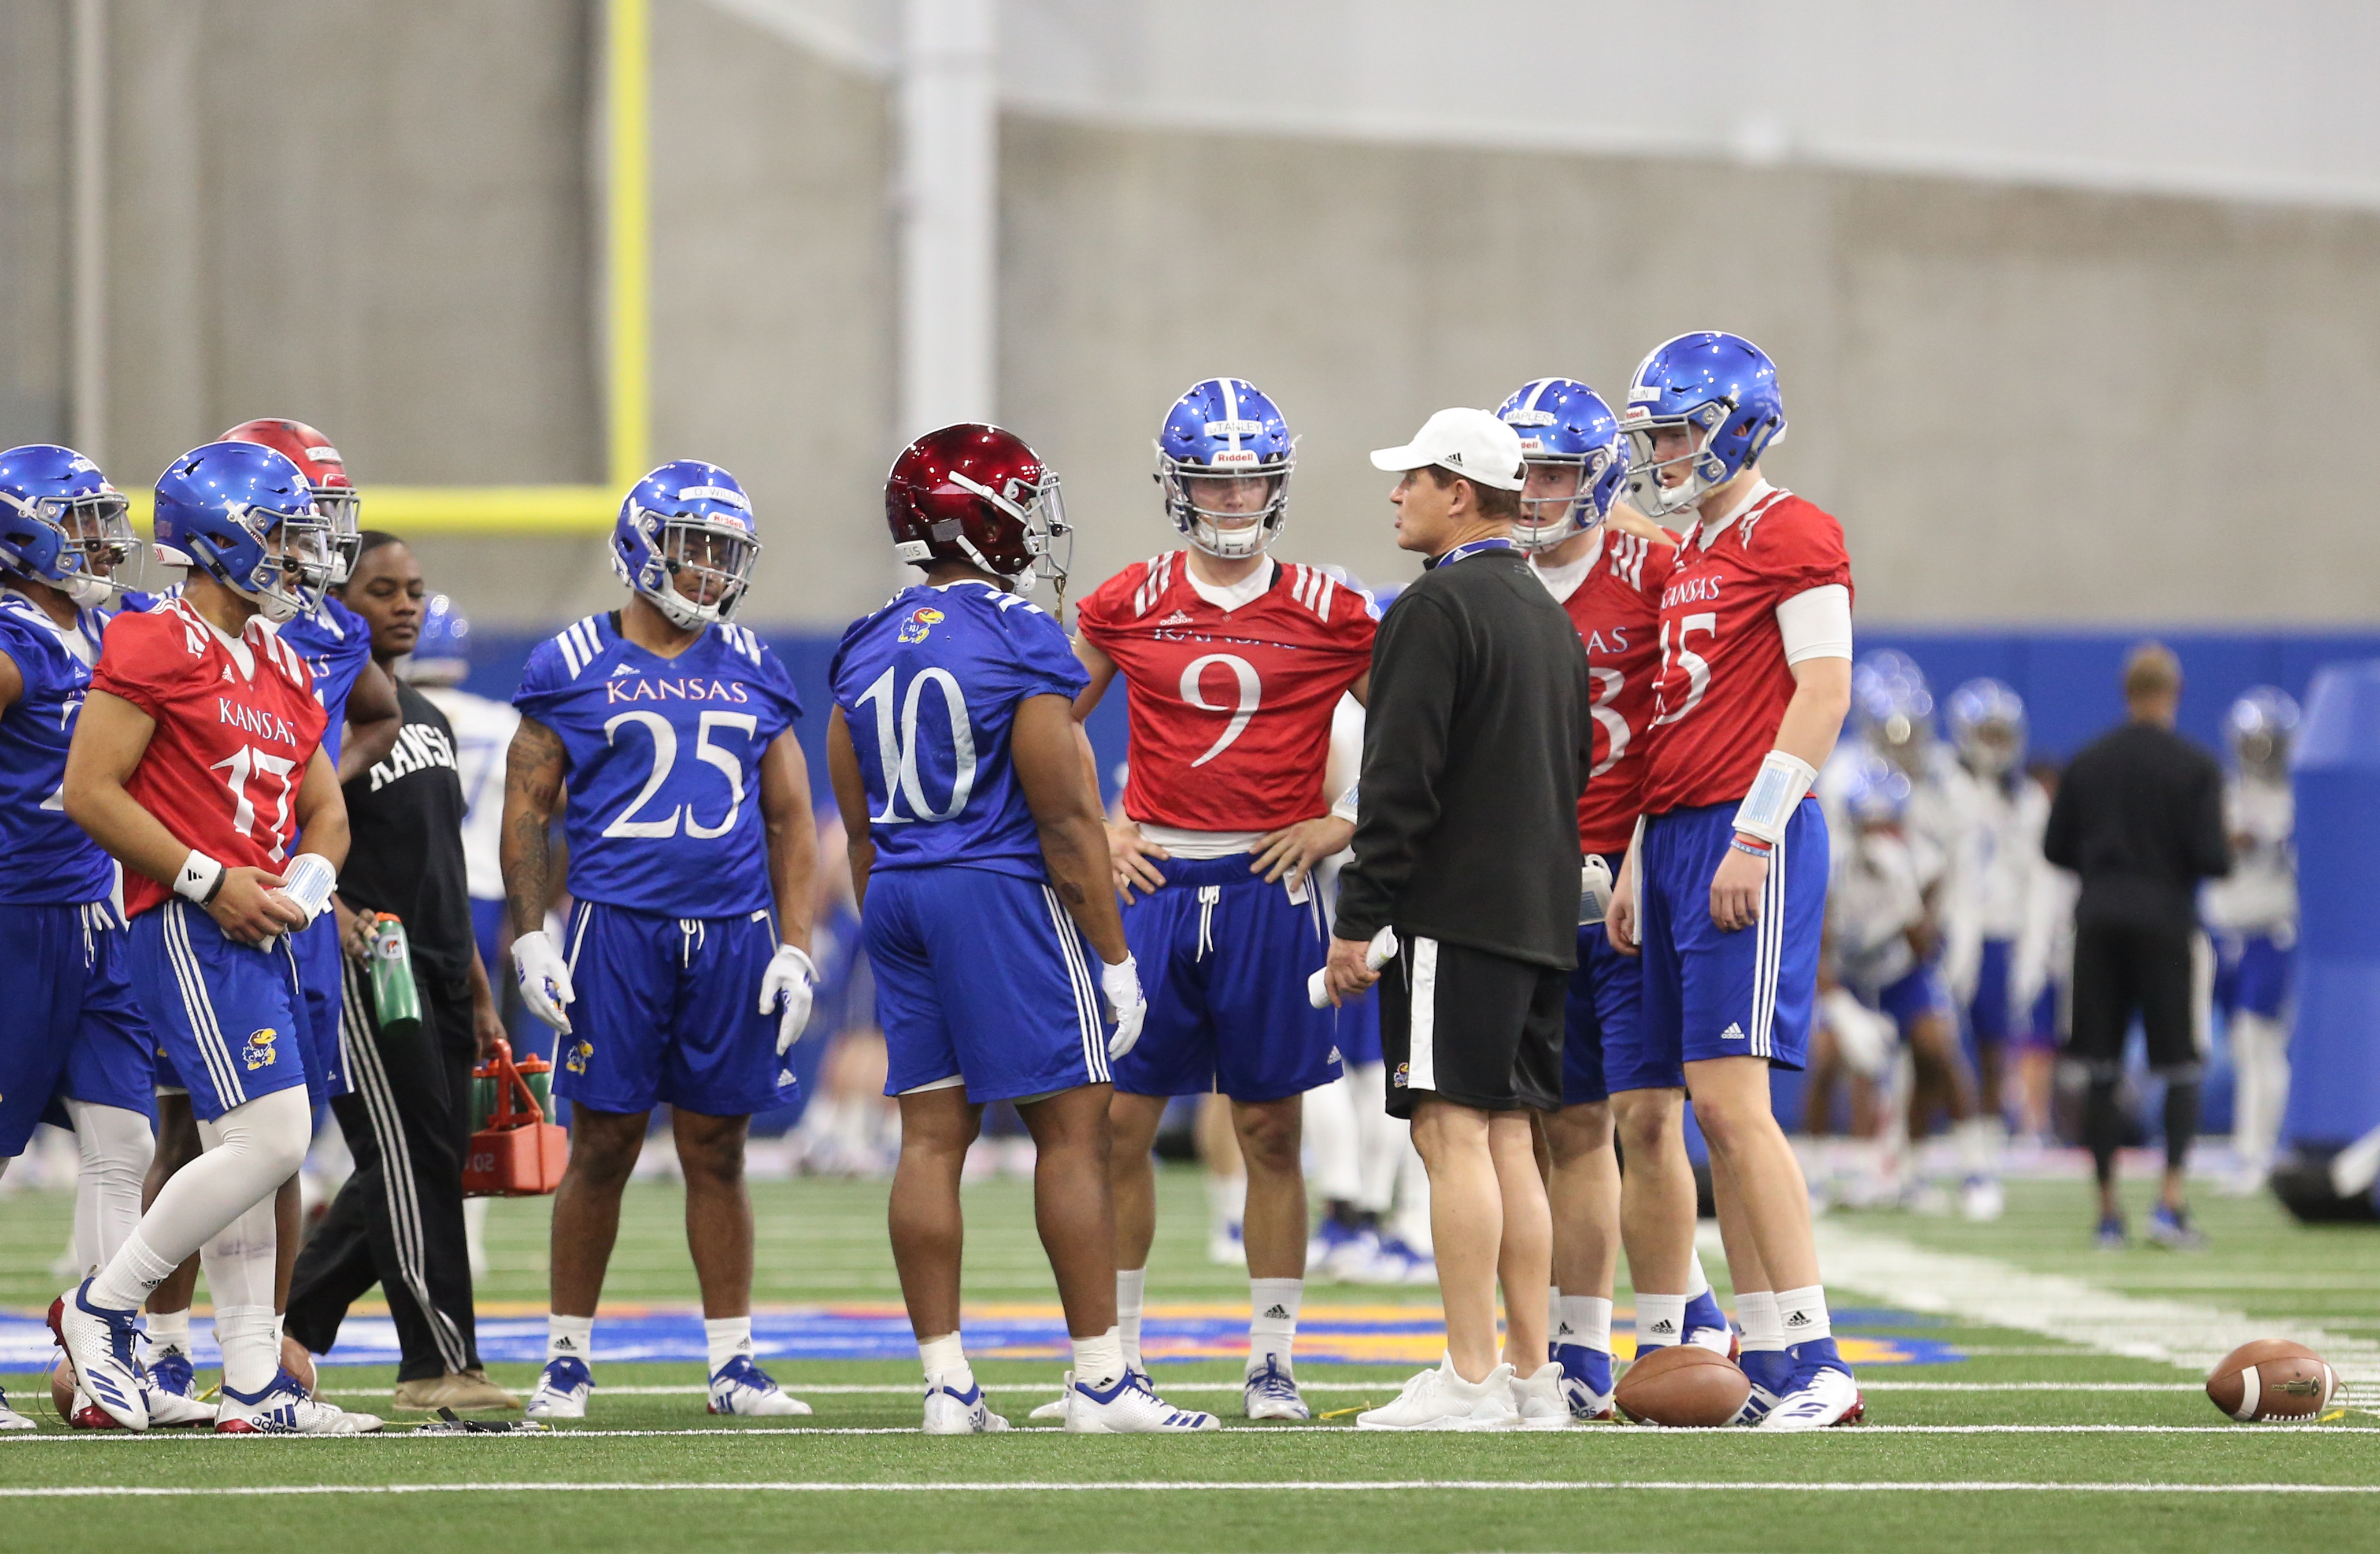 Over/under win totals released, KU projected to finish last